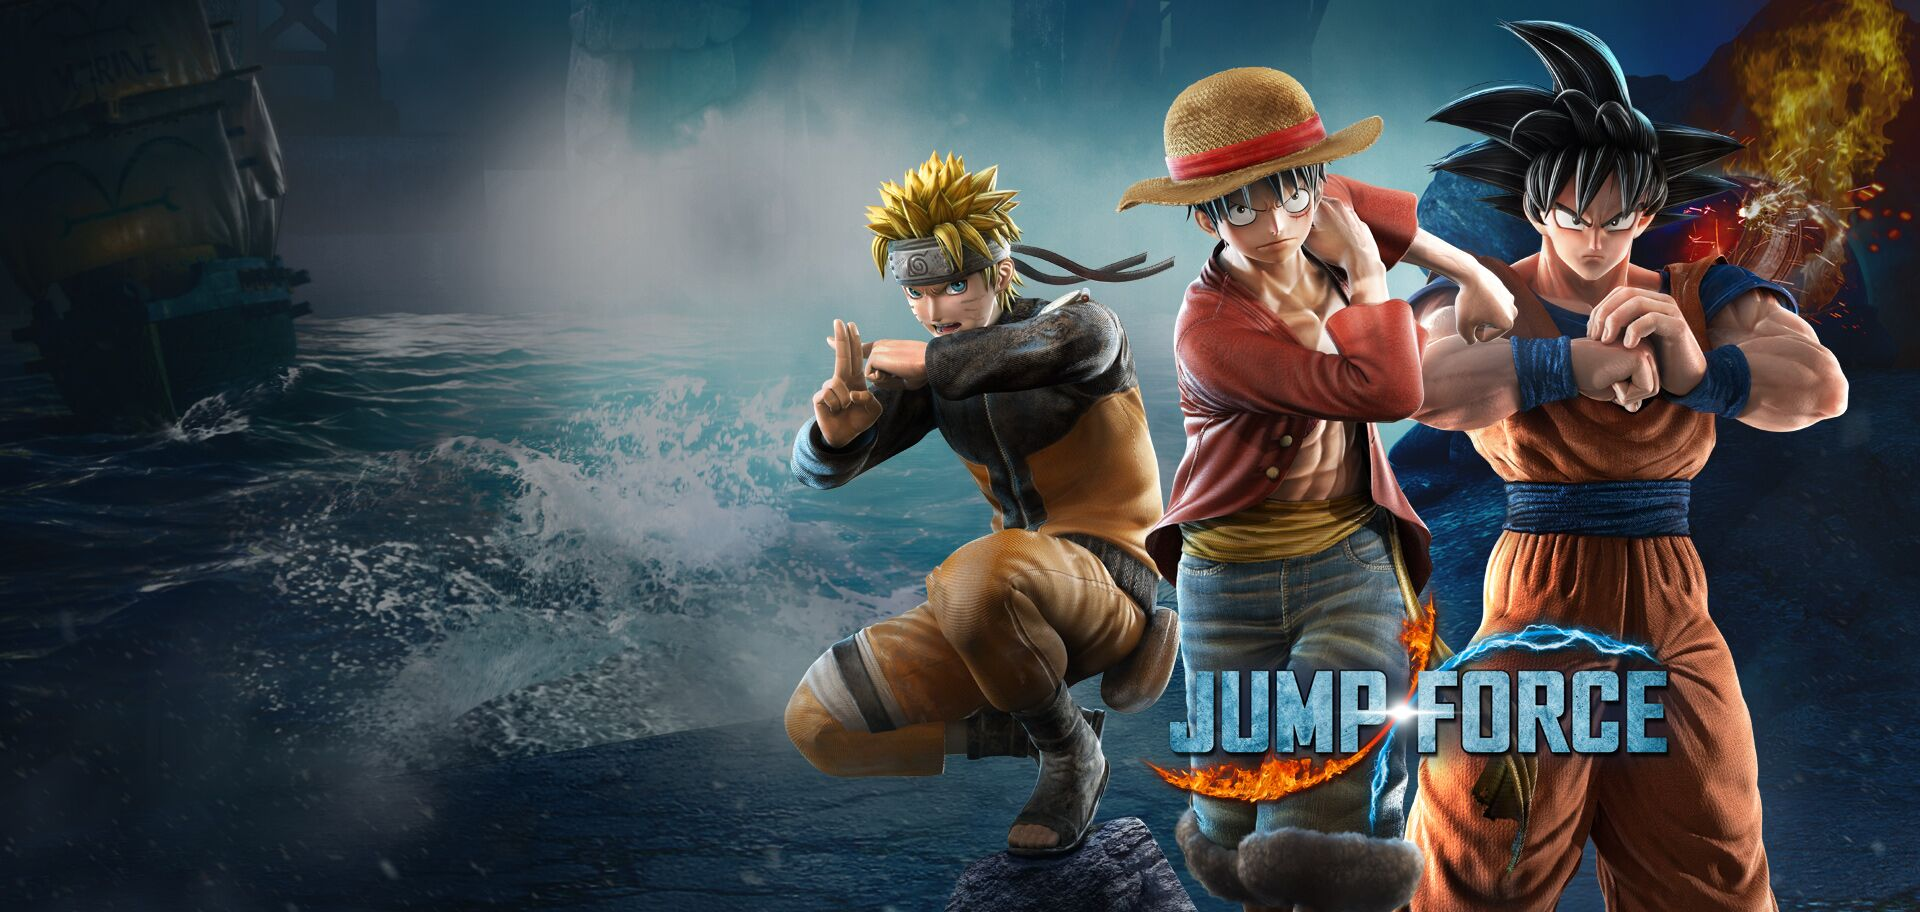 Jump Force Review: A Manga Fighter That Doesn't Quite Pack